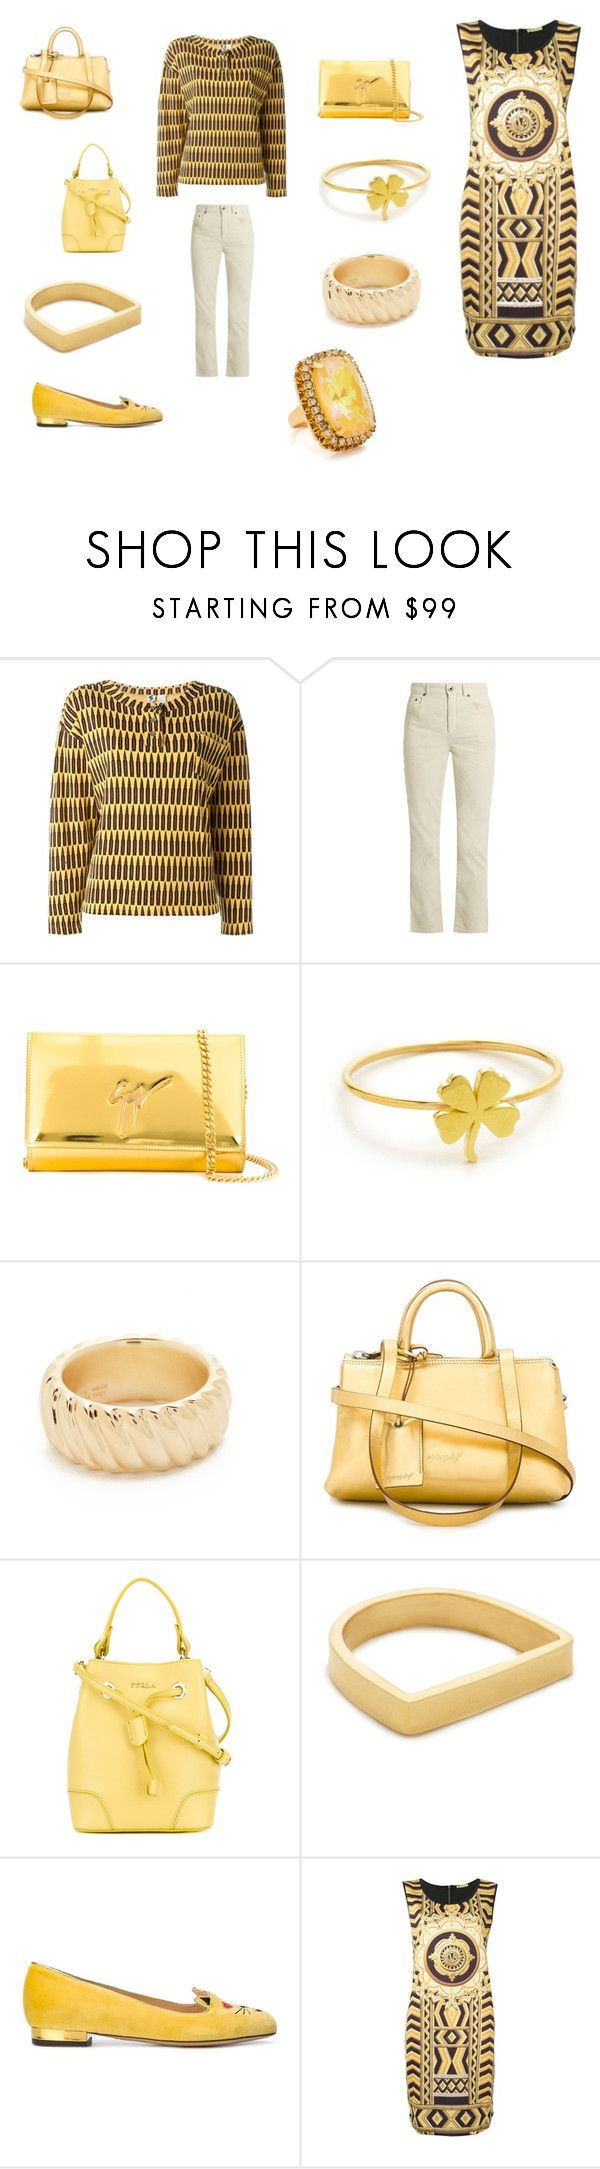 """POLYVORE FASHION"" by emmamegan-5678 ❤ liked on Polyvore featuring Stephen Sprouse, Chloé, Giuseppe Zanotti, Jennifer Meyer Jewelry, Soave Oro, Marsèll, Furla, Maya Magal, Charlotte Olympia and Versace"